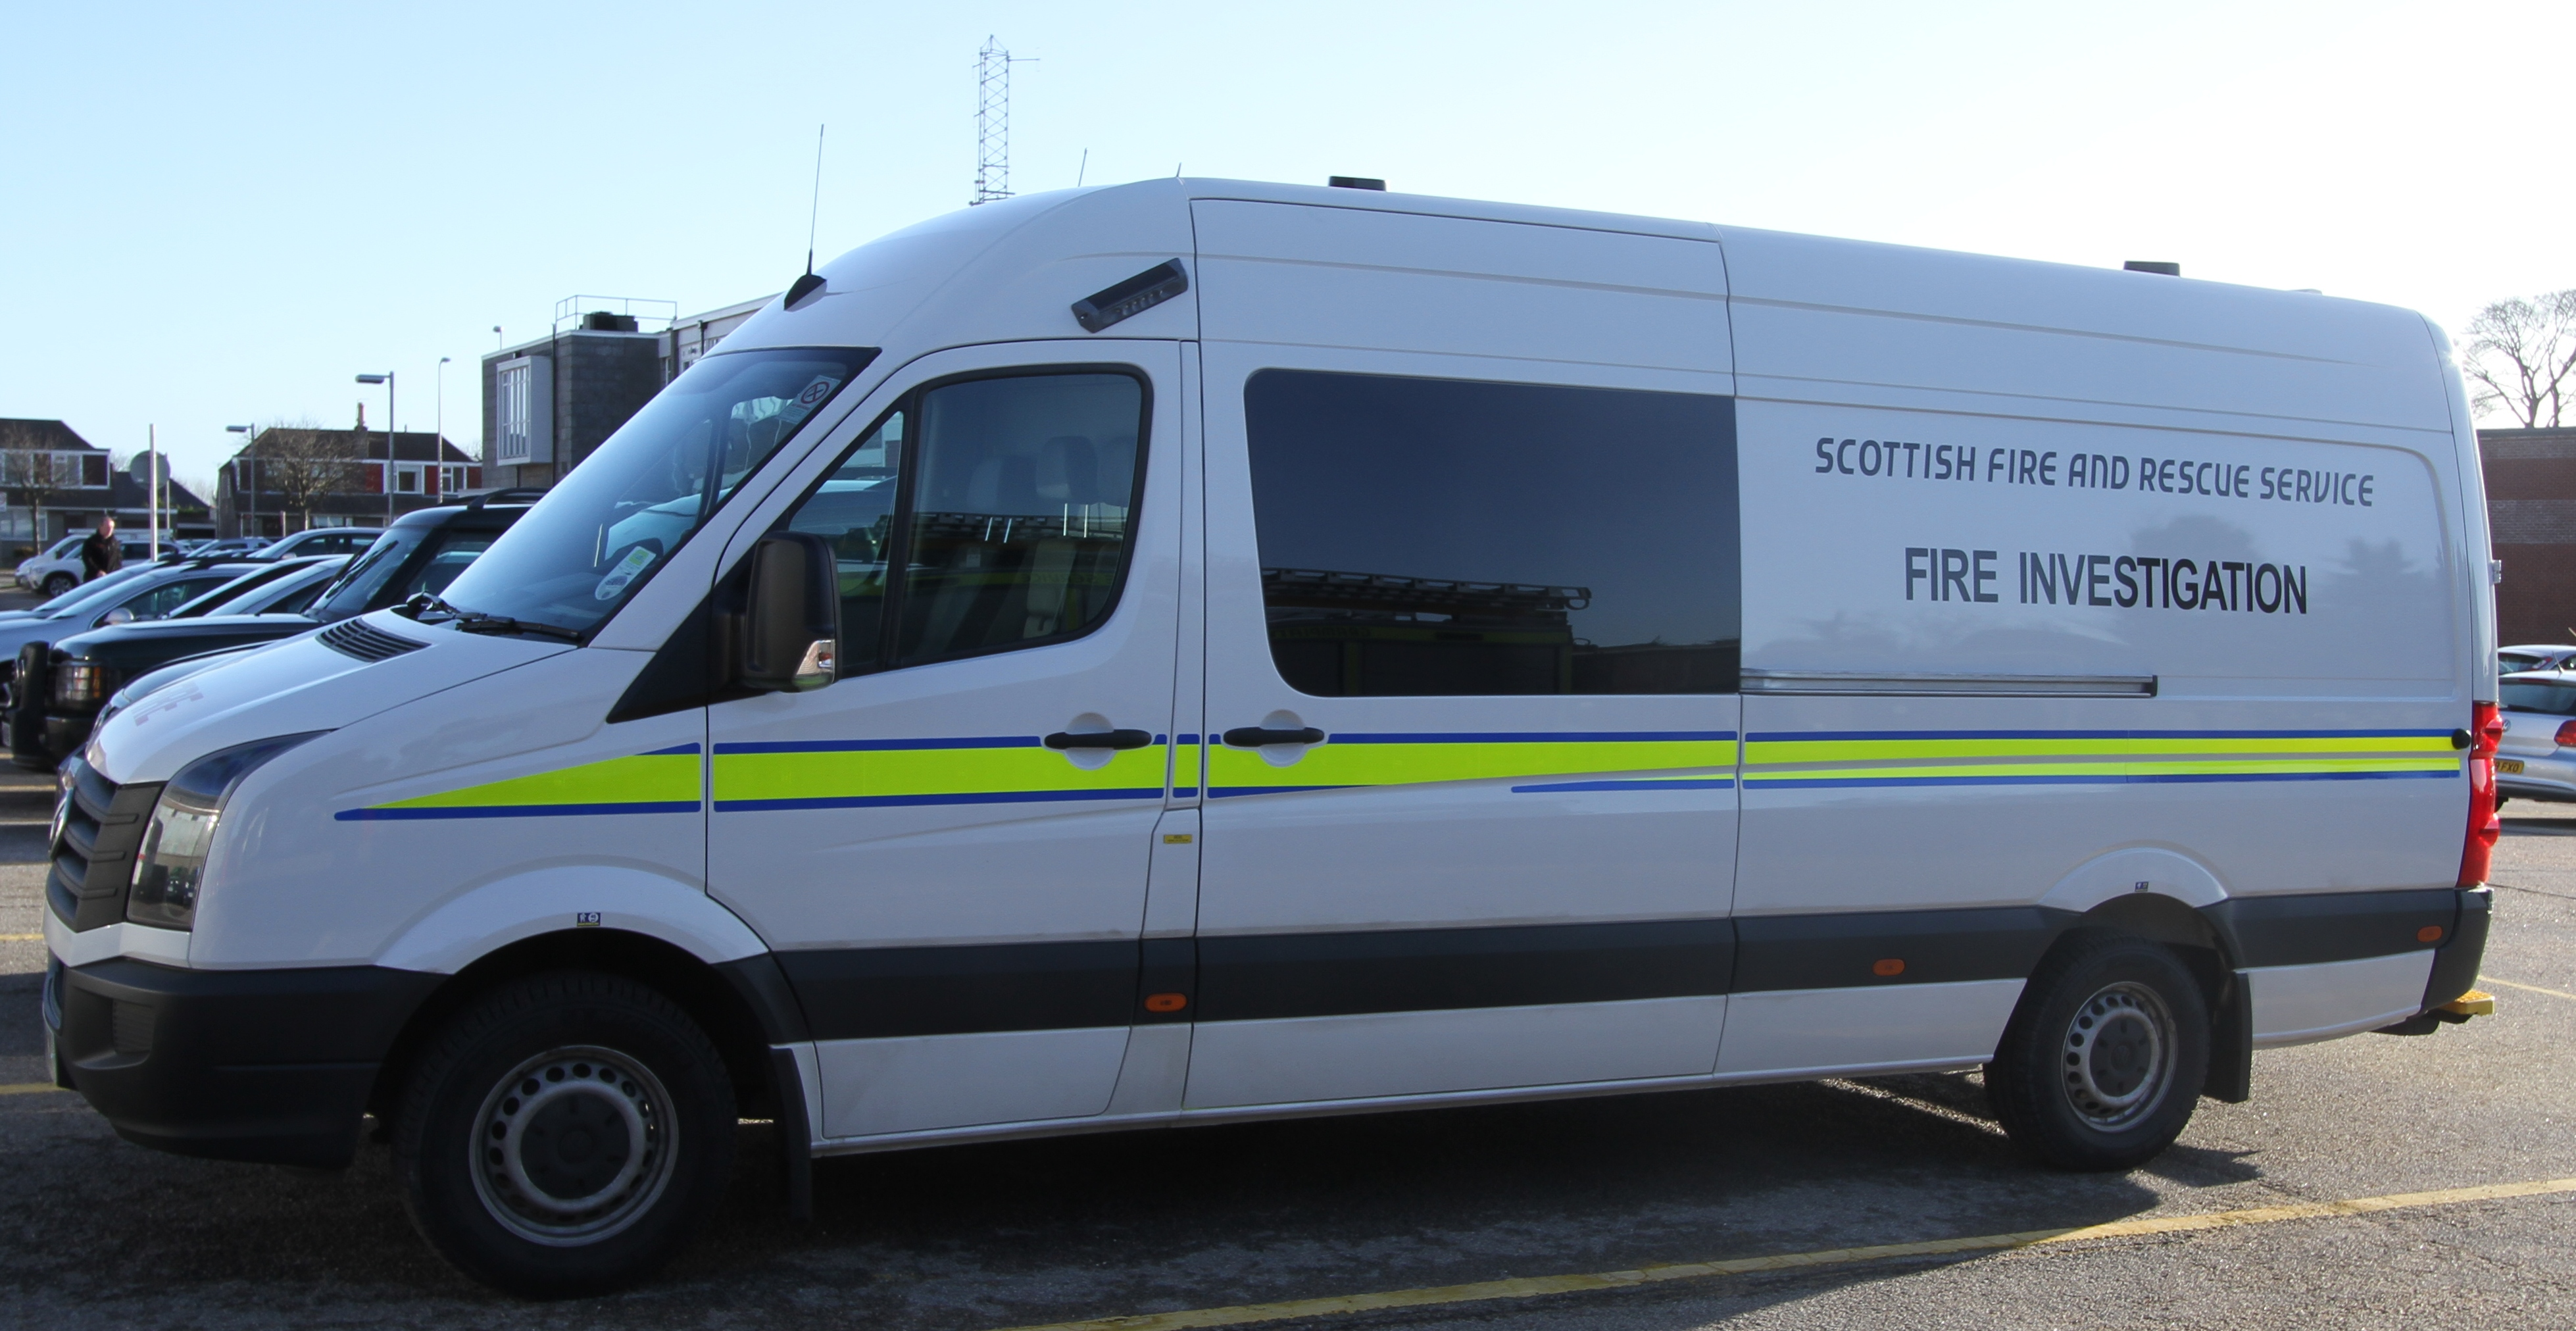 Fire Investigation Team - Orkney